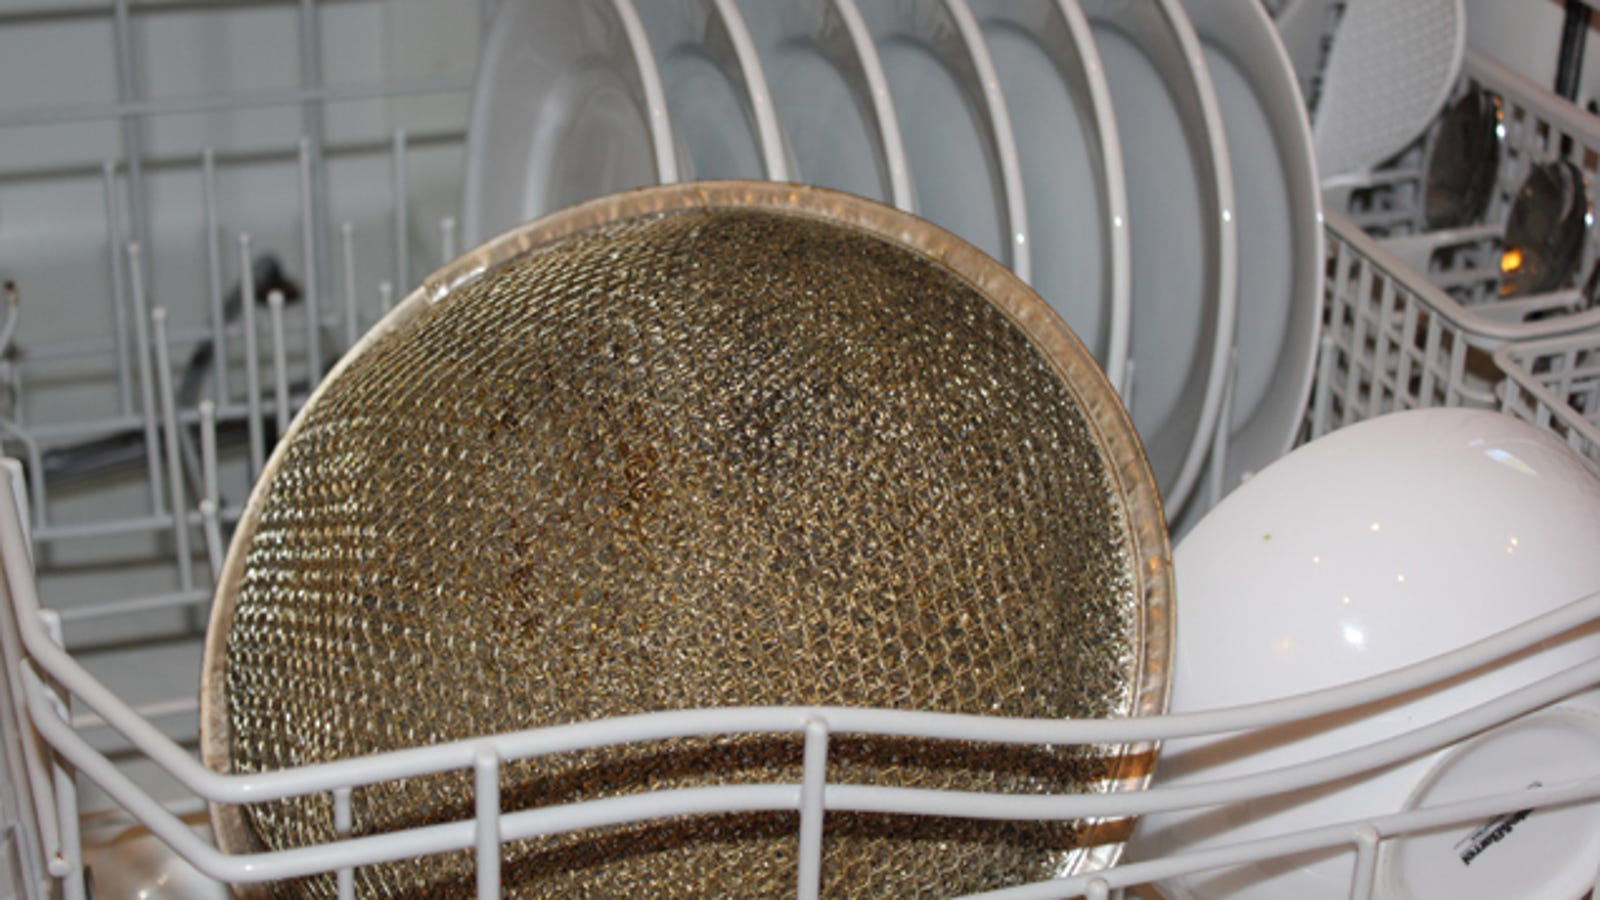 Clean Stove Hood Filters In The Dishwasher Weekly To Keep